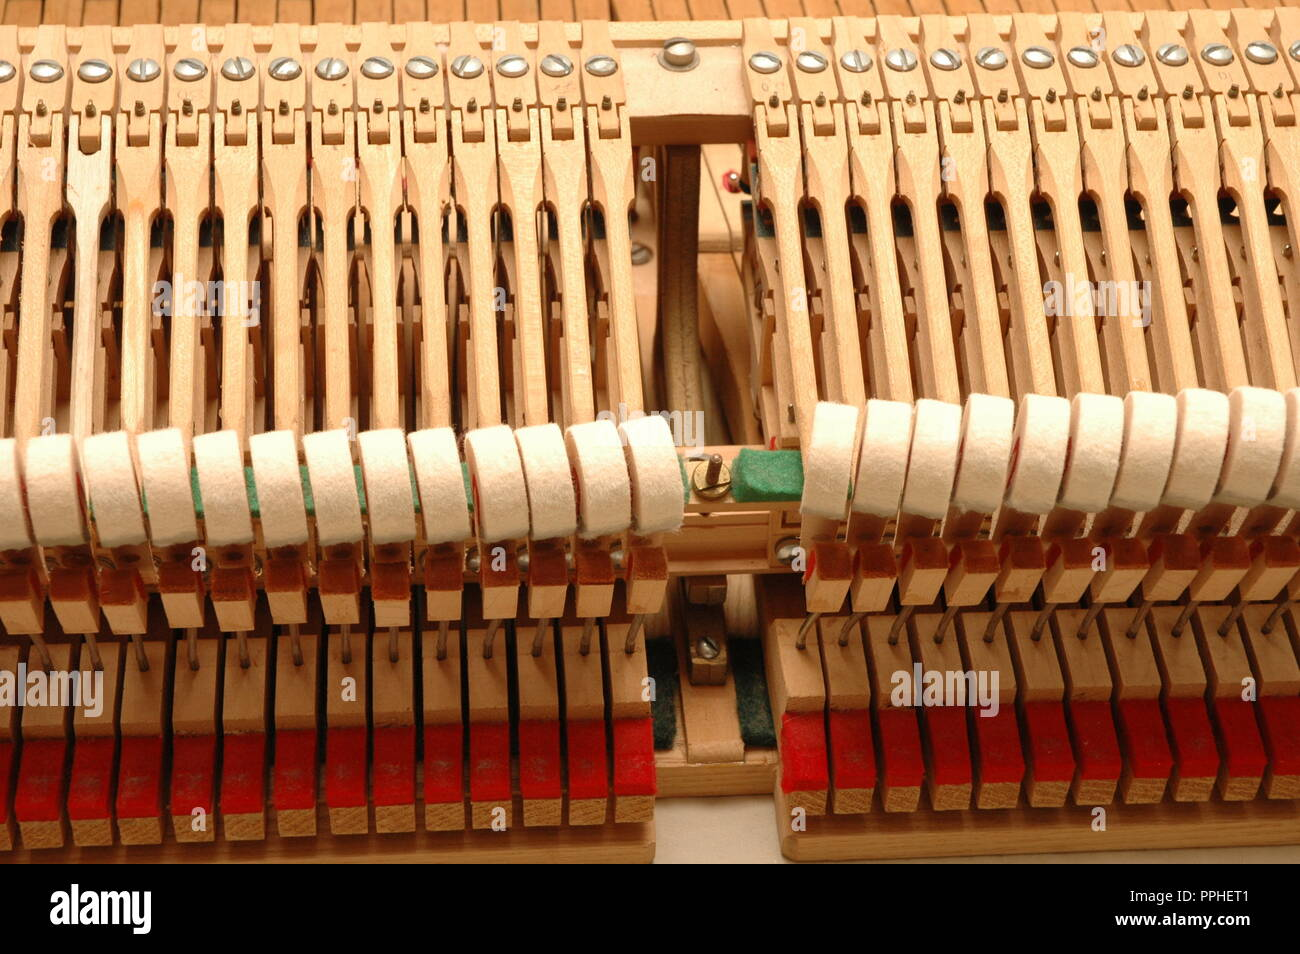 Disassembled Piano Action Hammers - Stock Image